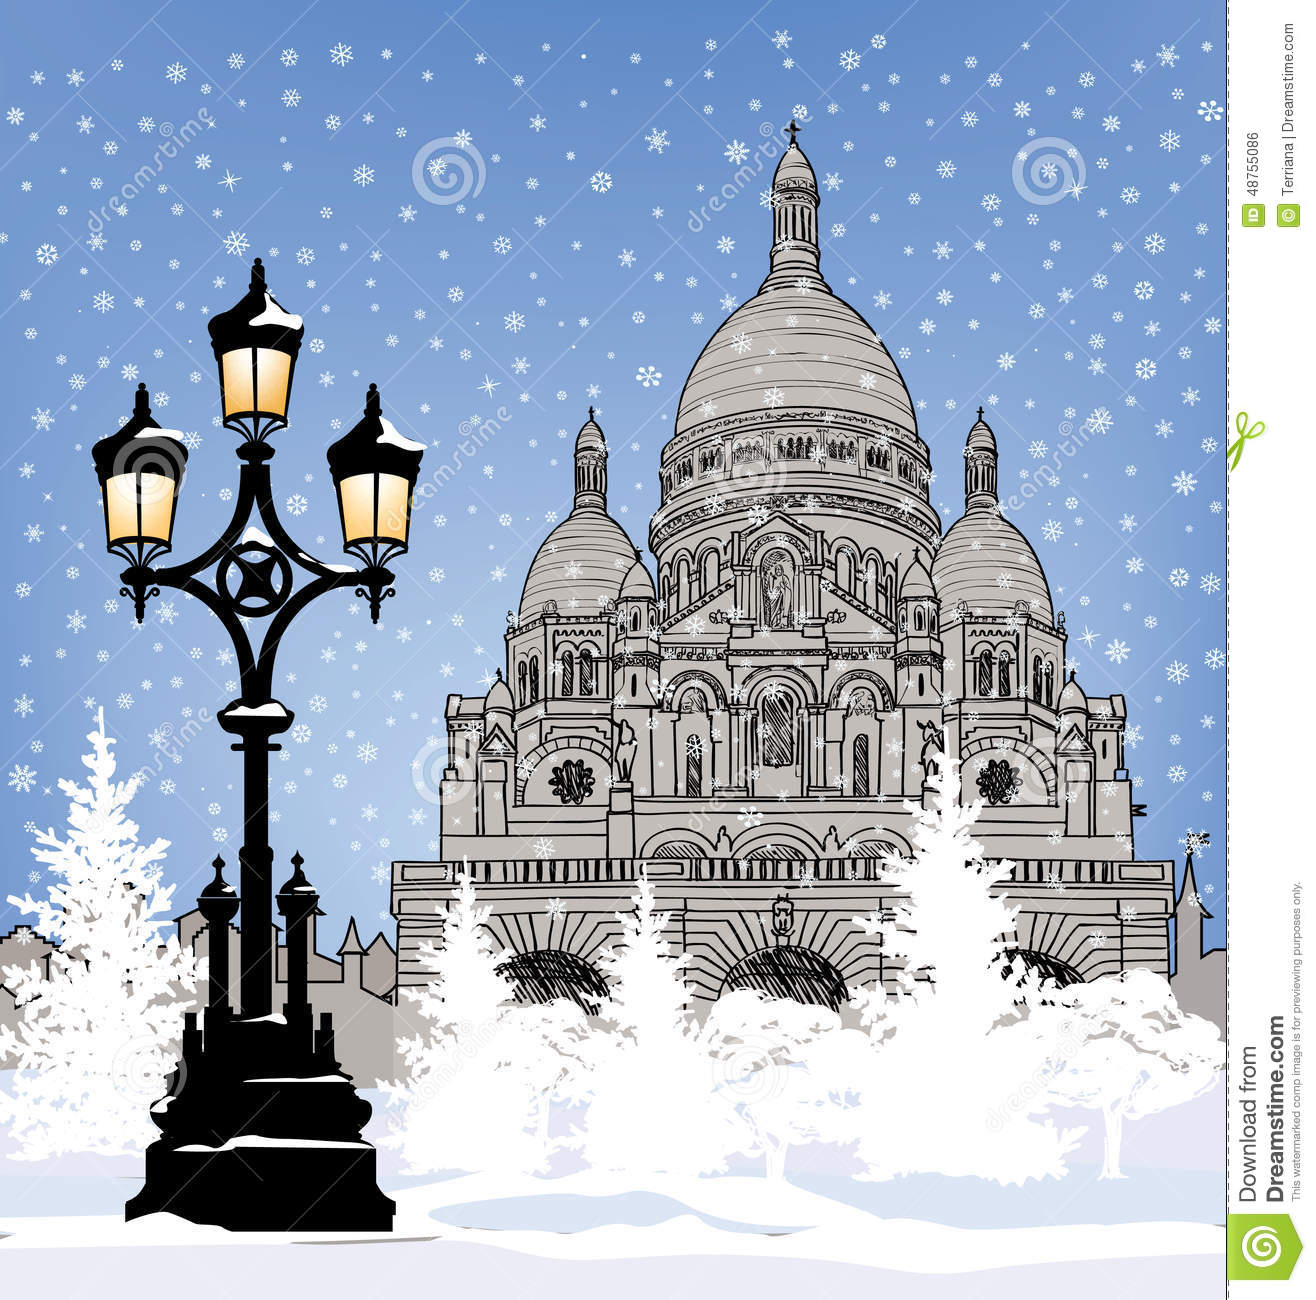 Snowy City Wallpaper. Winter Holiday Snow Background